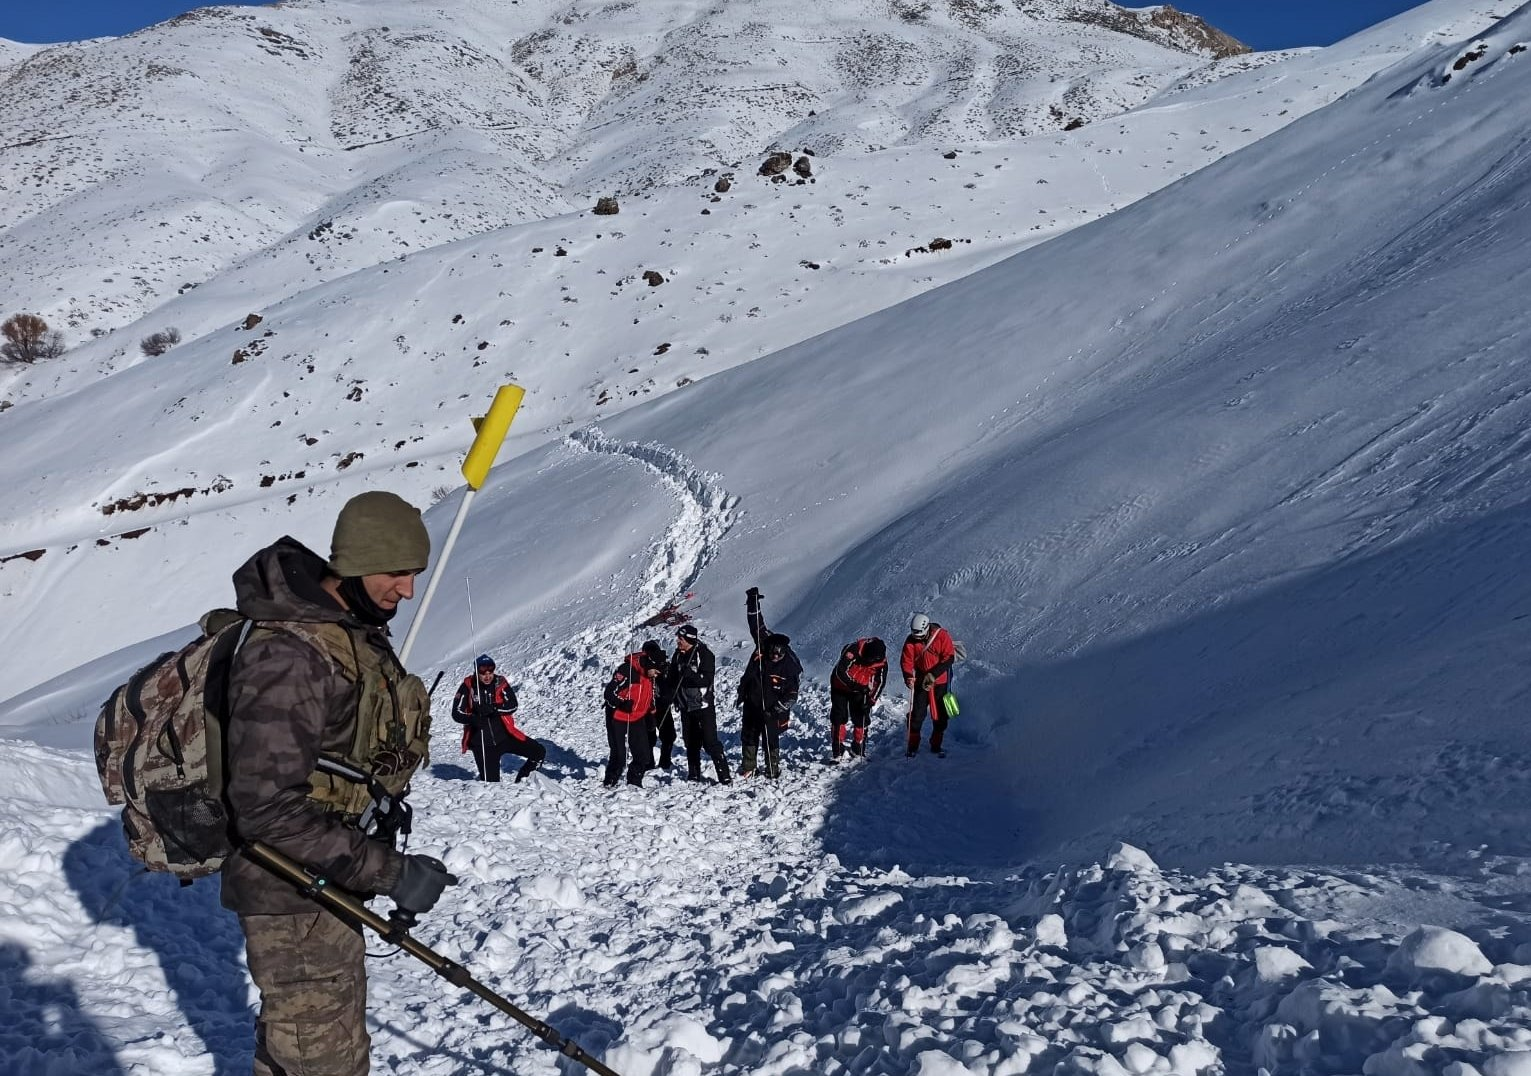 Search and rescue crews scour the avalanche site, in Hakkari, southeastern Turkey, Dec. 27, 2020. (AA PHOTO)